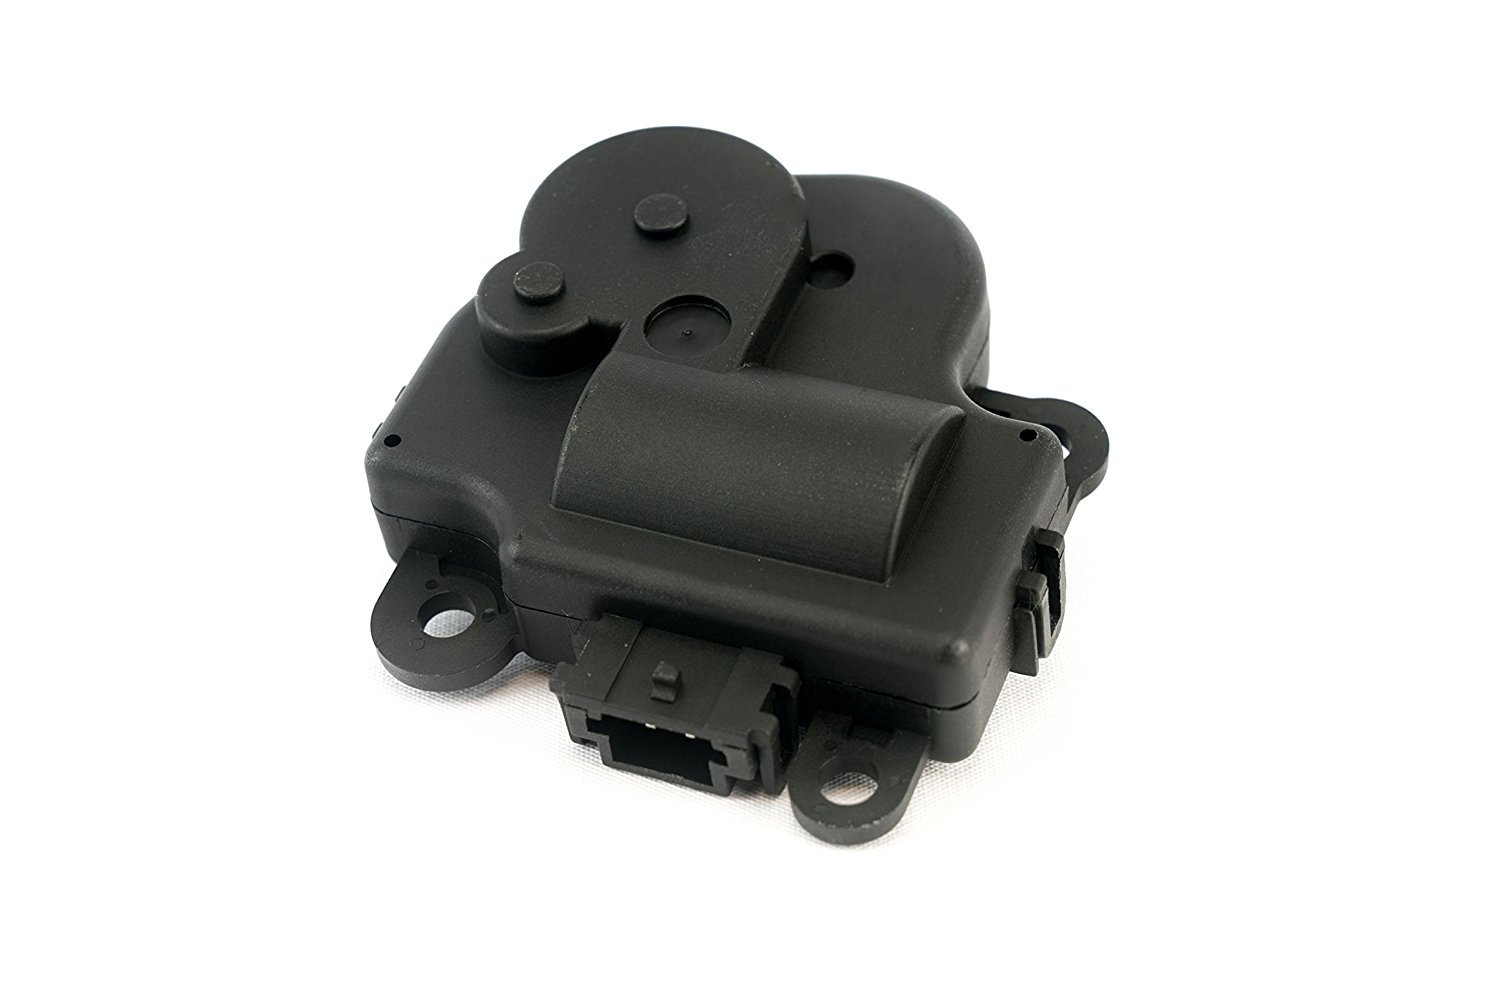 HVAC Air Door Actuator - Fits Chevy Impala 2004-2013 - Replaces# 1573517, 1574122, 15844096, 22754988, 52409974, 604-108, 15-74122, 604108 - Heater Temperature Blend Door Actuator Fits Chevy Impala